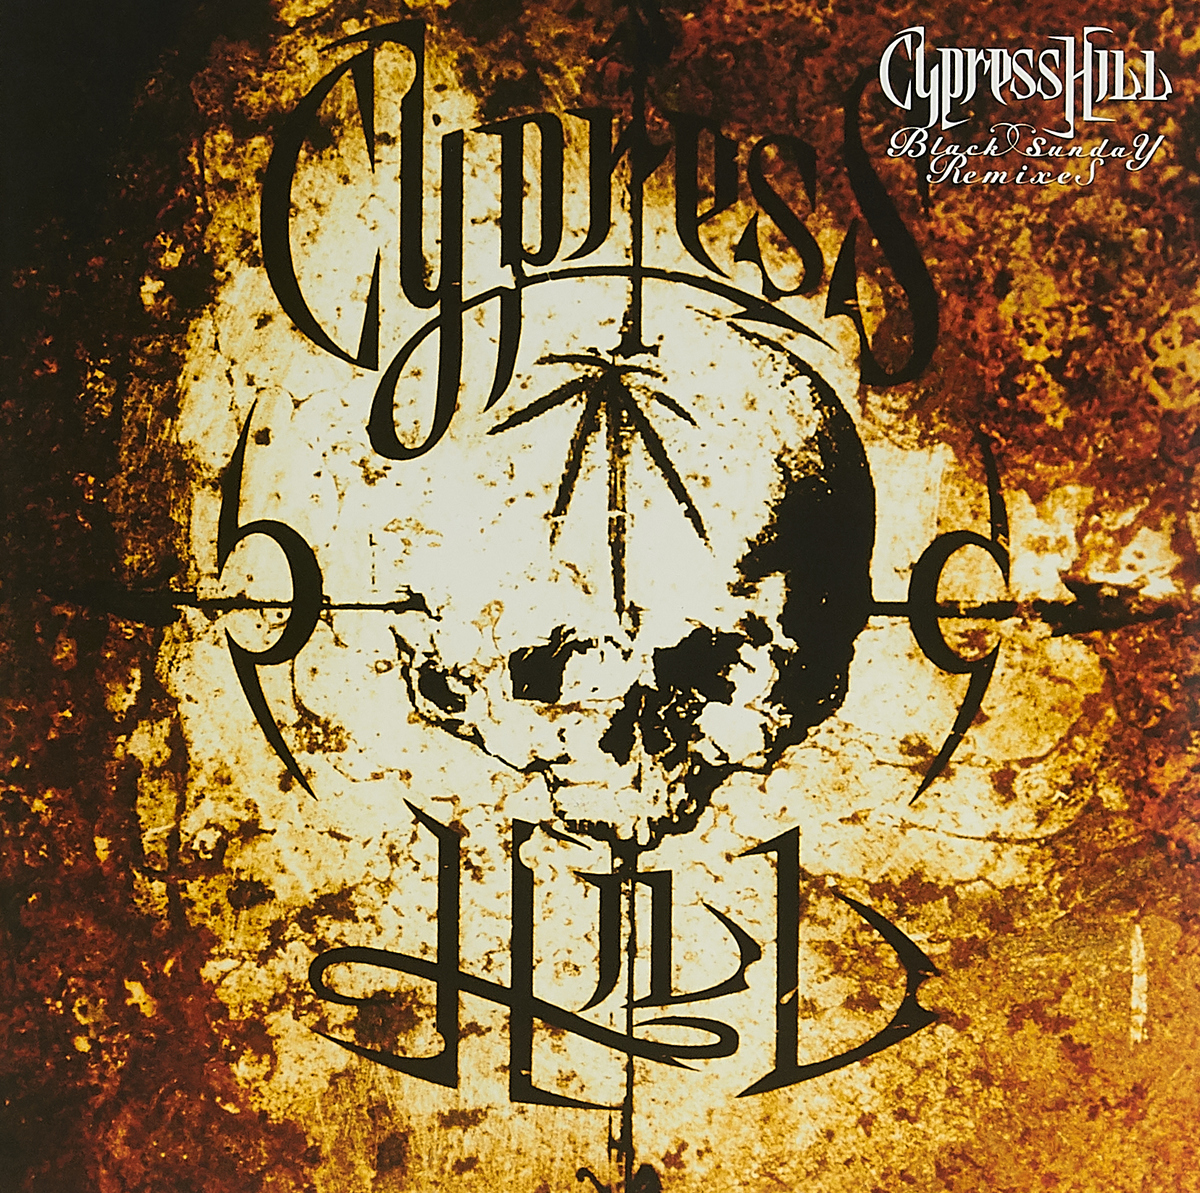 цена на Cypress Hill Cypress Hill. Black Sunday Remixes (LP)